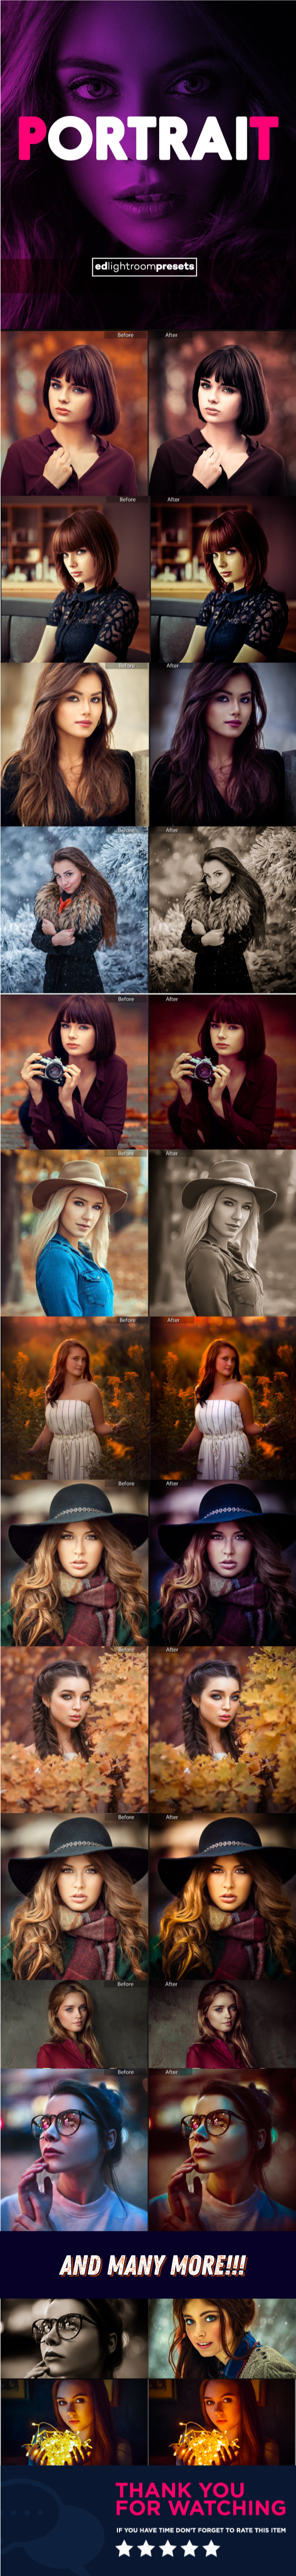 25 Premium Portraits Lightroom presets - Portrait Lightroom Presets